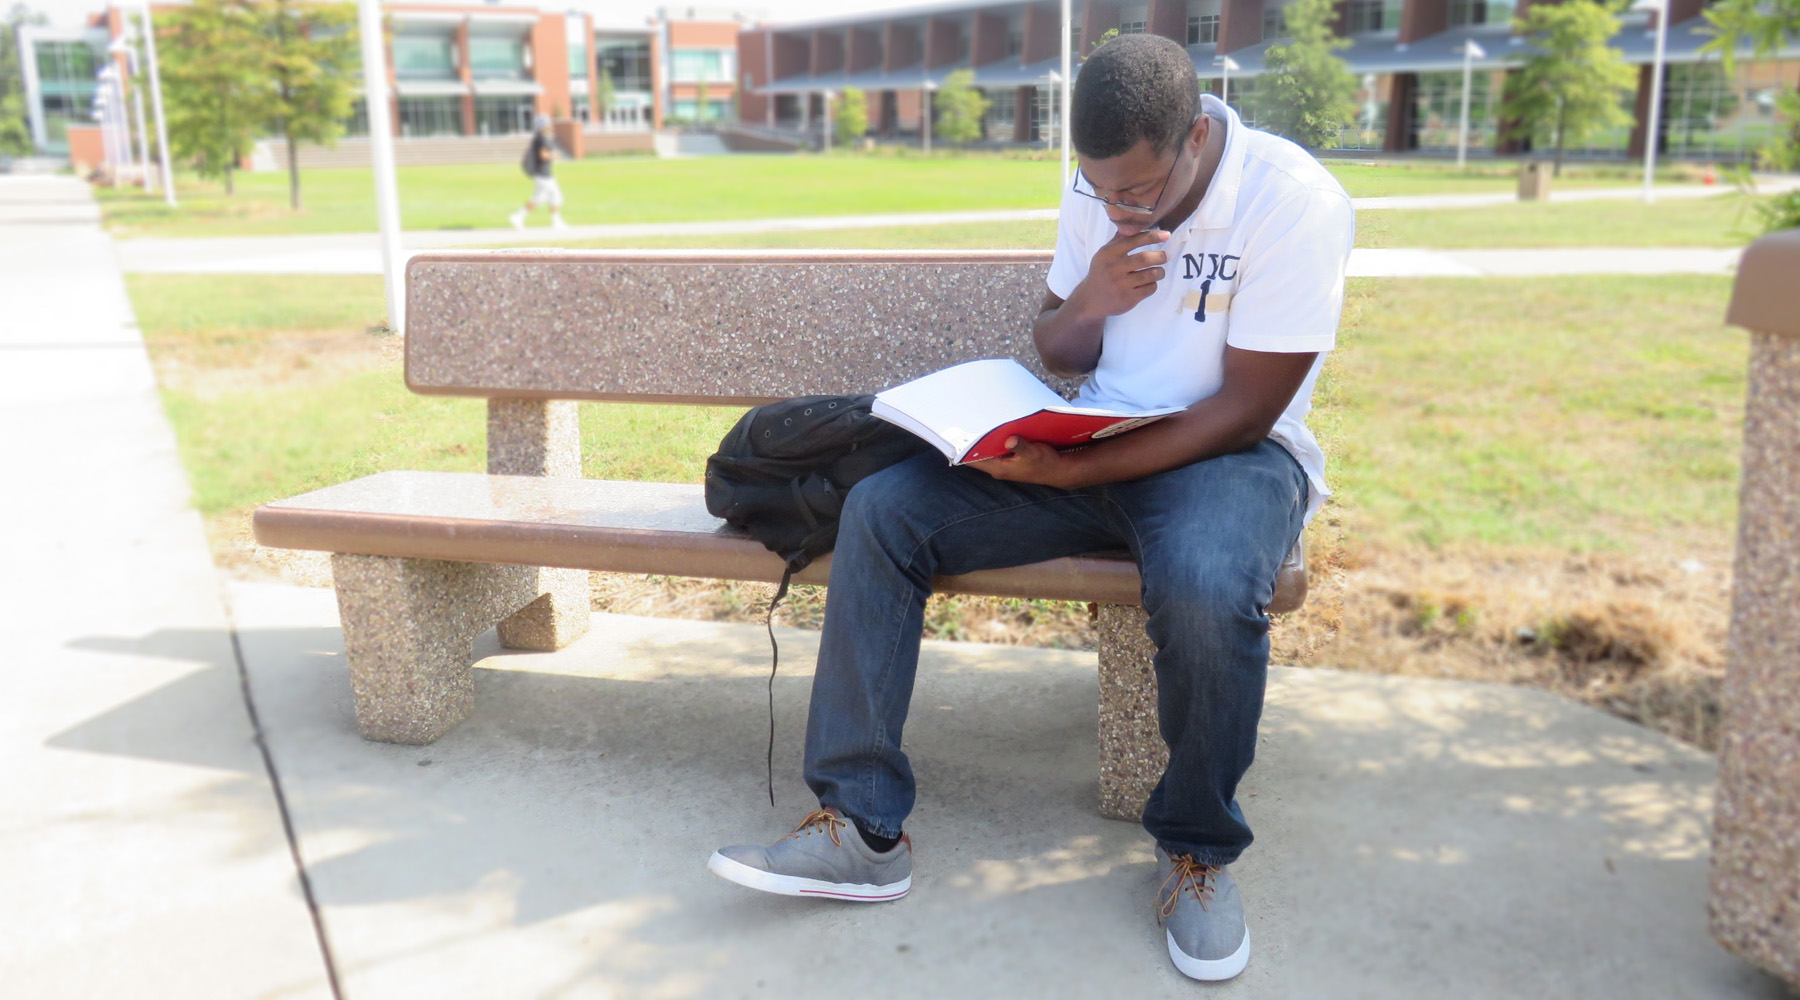 Student Studying On Main Campus In Quad Area